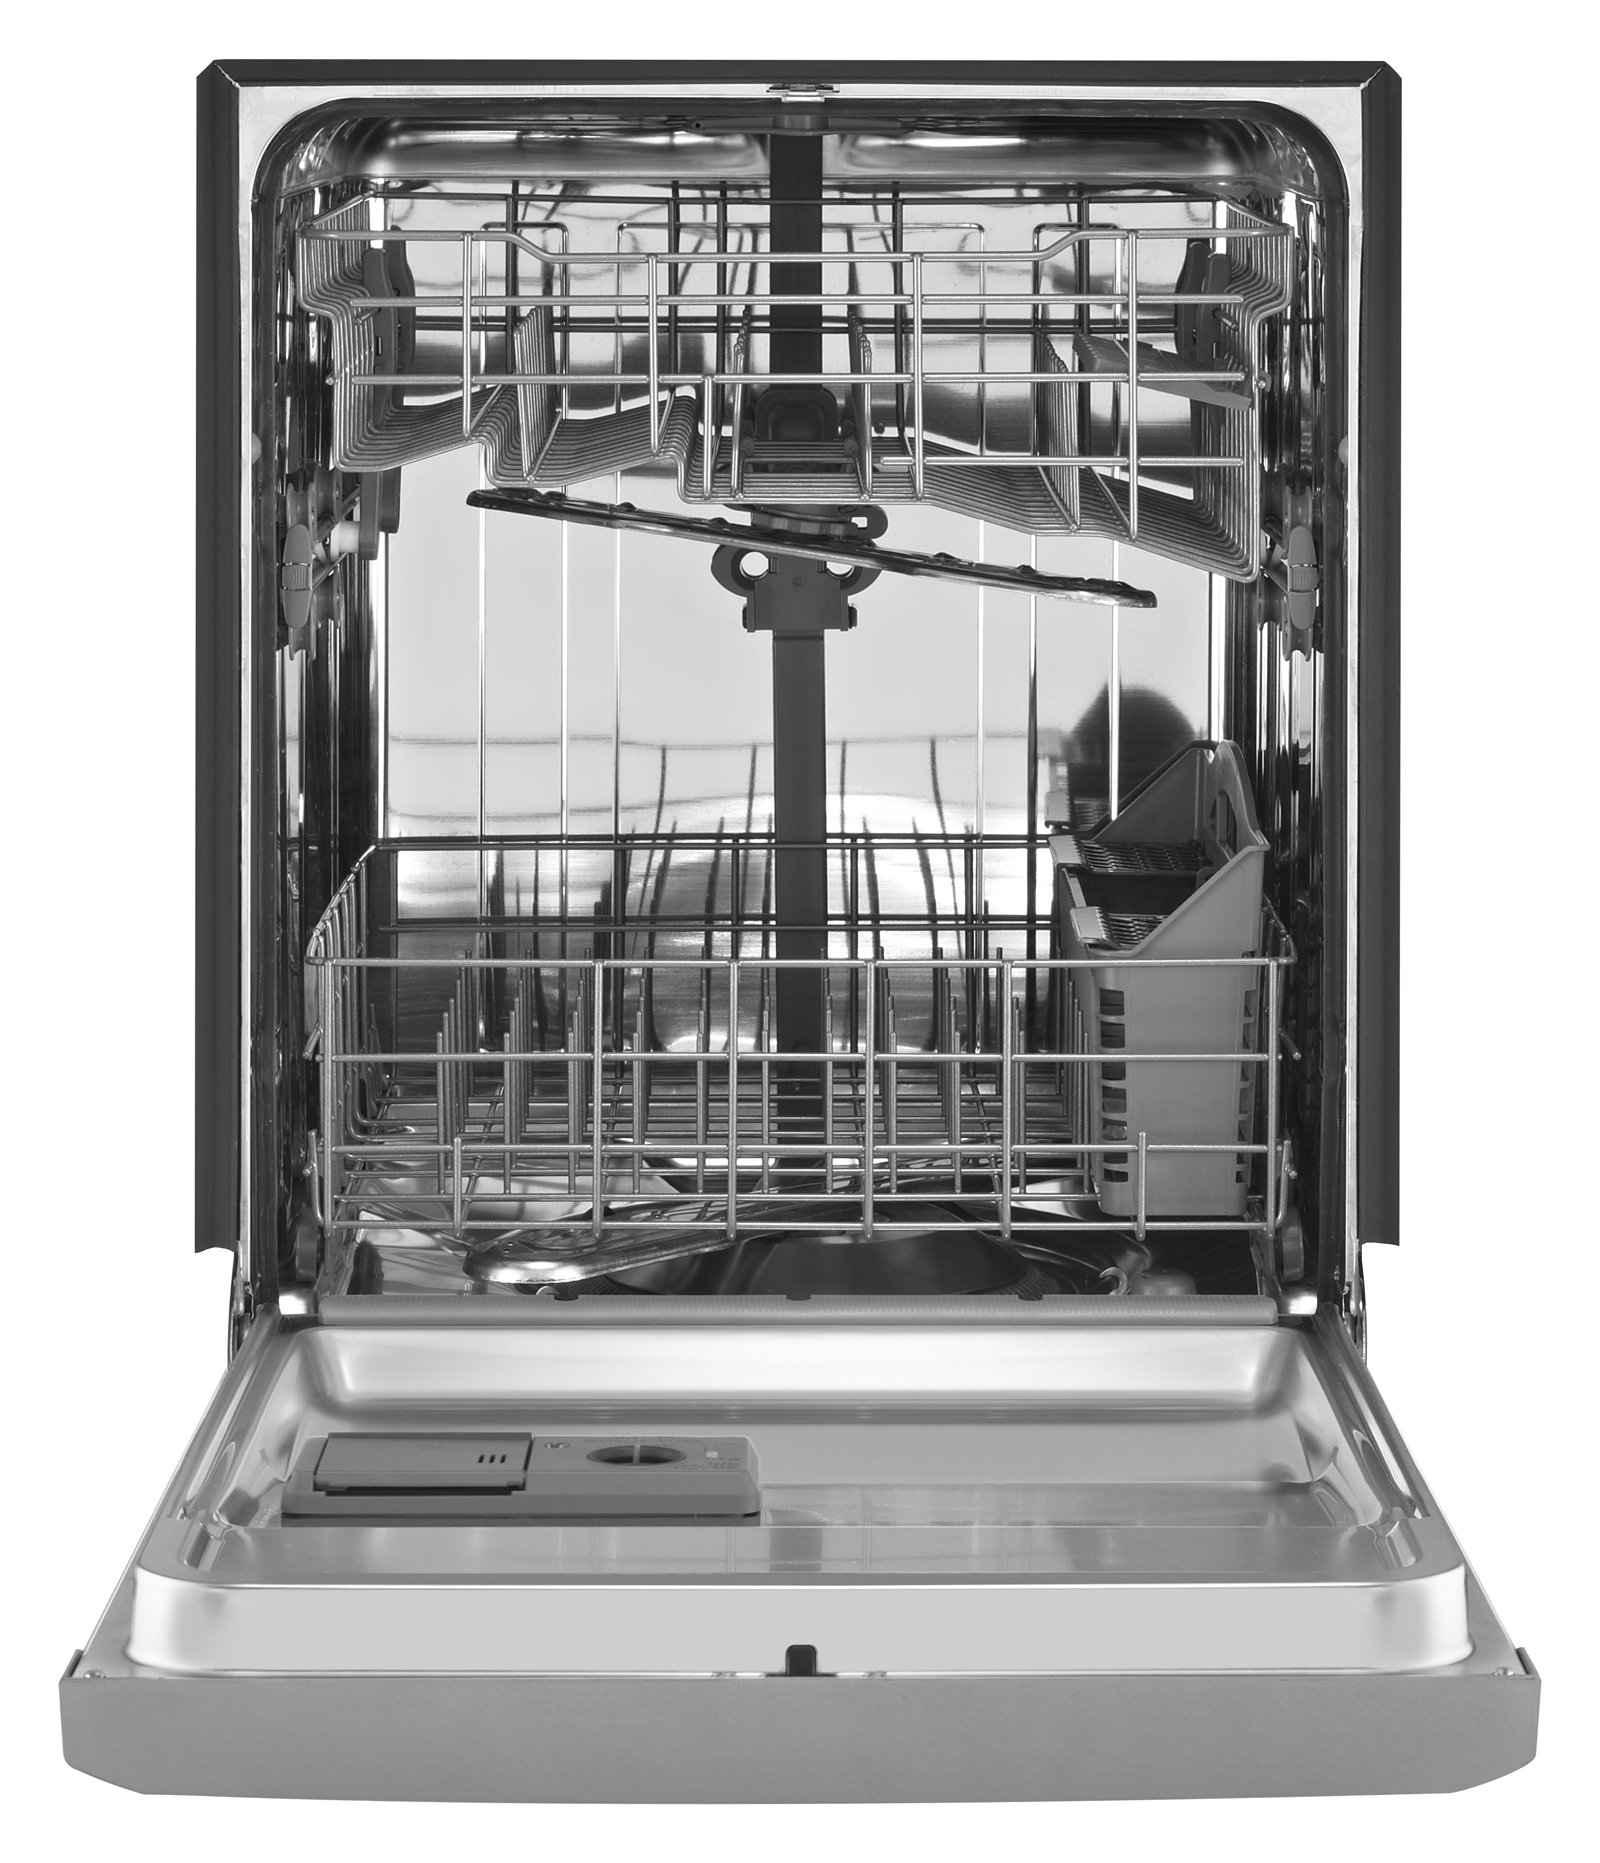 "Maytag MDB4949SDM 24"" Built-In Dishwasher w/ PowerBlast™ Cycle - Stainless Steel"